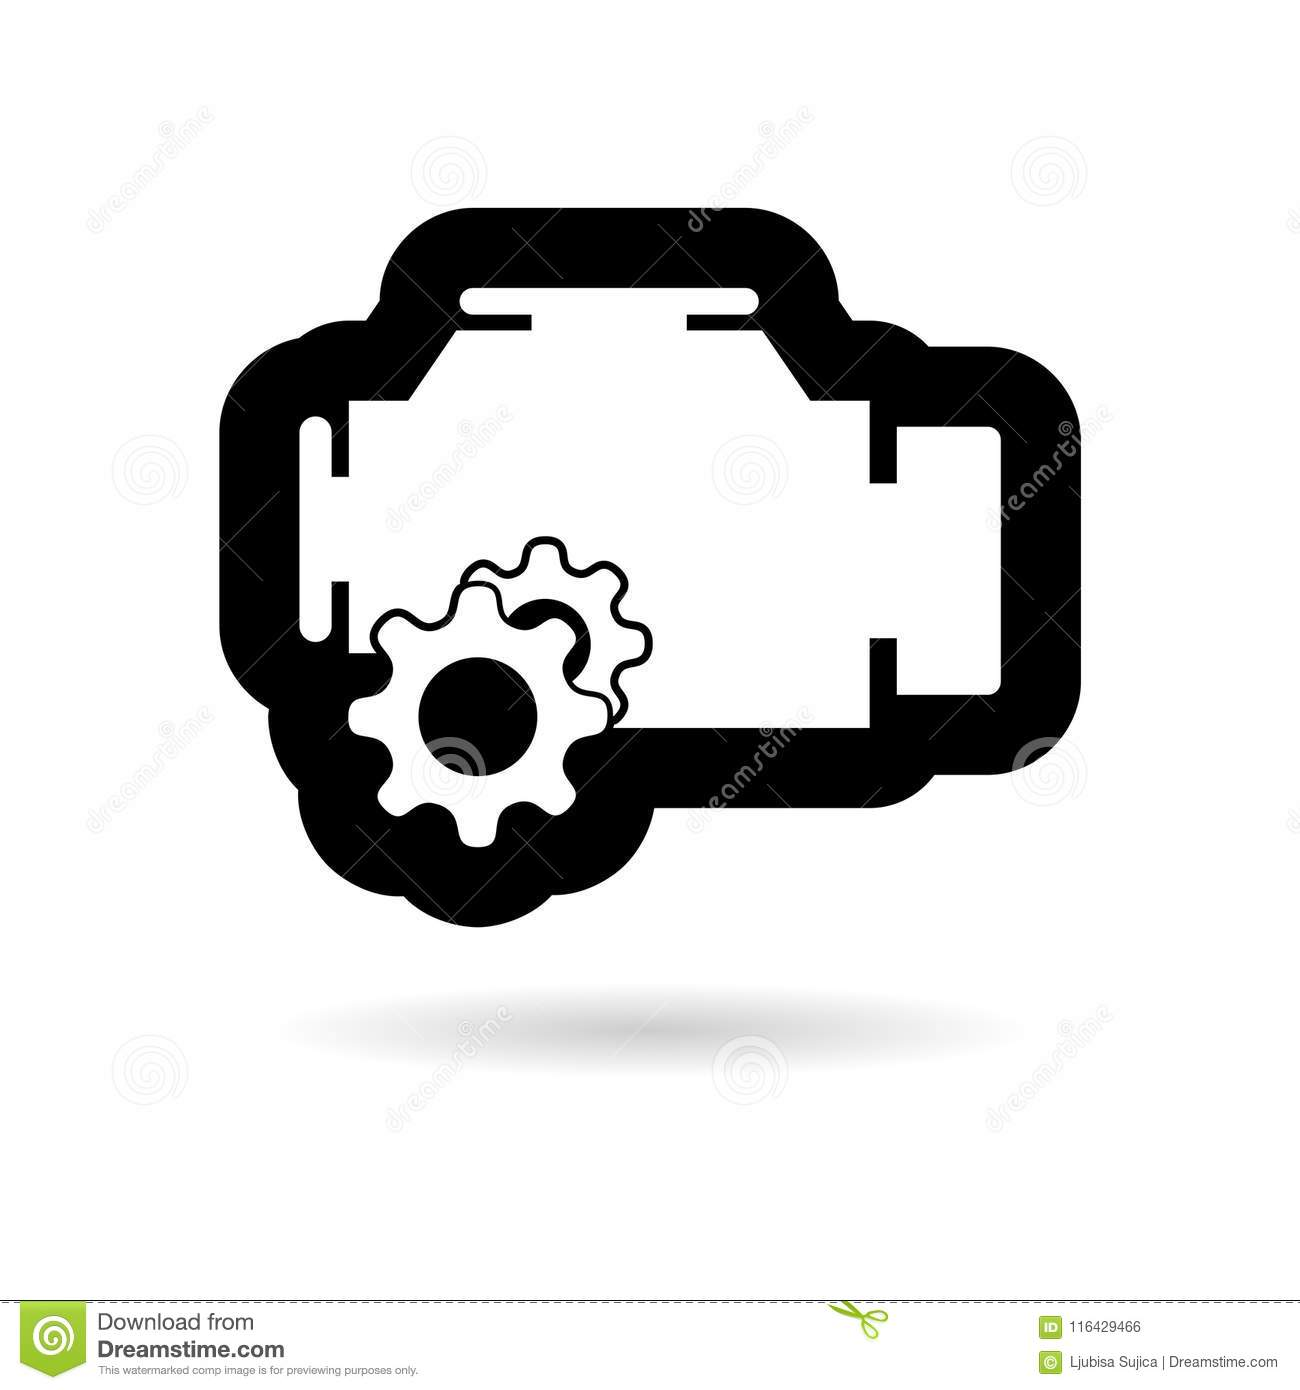 Black Electric motor icon stock vector. Illustration of ... on electric light symbols, electric wire symbols, 12 volt electric symbols, symbol rate, symbols of death, plastic cup symbols, plastic canvas symbols, adinkra symbols, access control symbols, electric panel symbols, electric circuit symbols, electric control symbols, electric timer symbols, alchemical symbol, gold ring symbols, electric wiring symbols, electrical symbols, secular icon, intrinsic safety symbols, electric switch symbols, traffic sign, electric boat symbols, north america electric symbols, astrological symbols, power circuit schematic symbols, unicode symbols, letterlike symbols, electric business symbols, kenneth burke, electric commercial symbols,